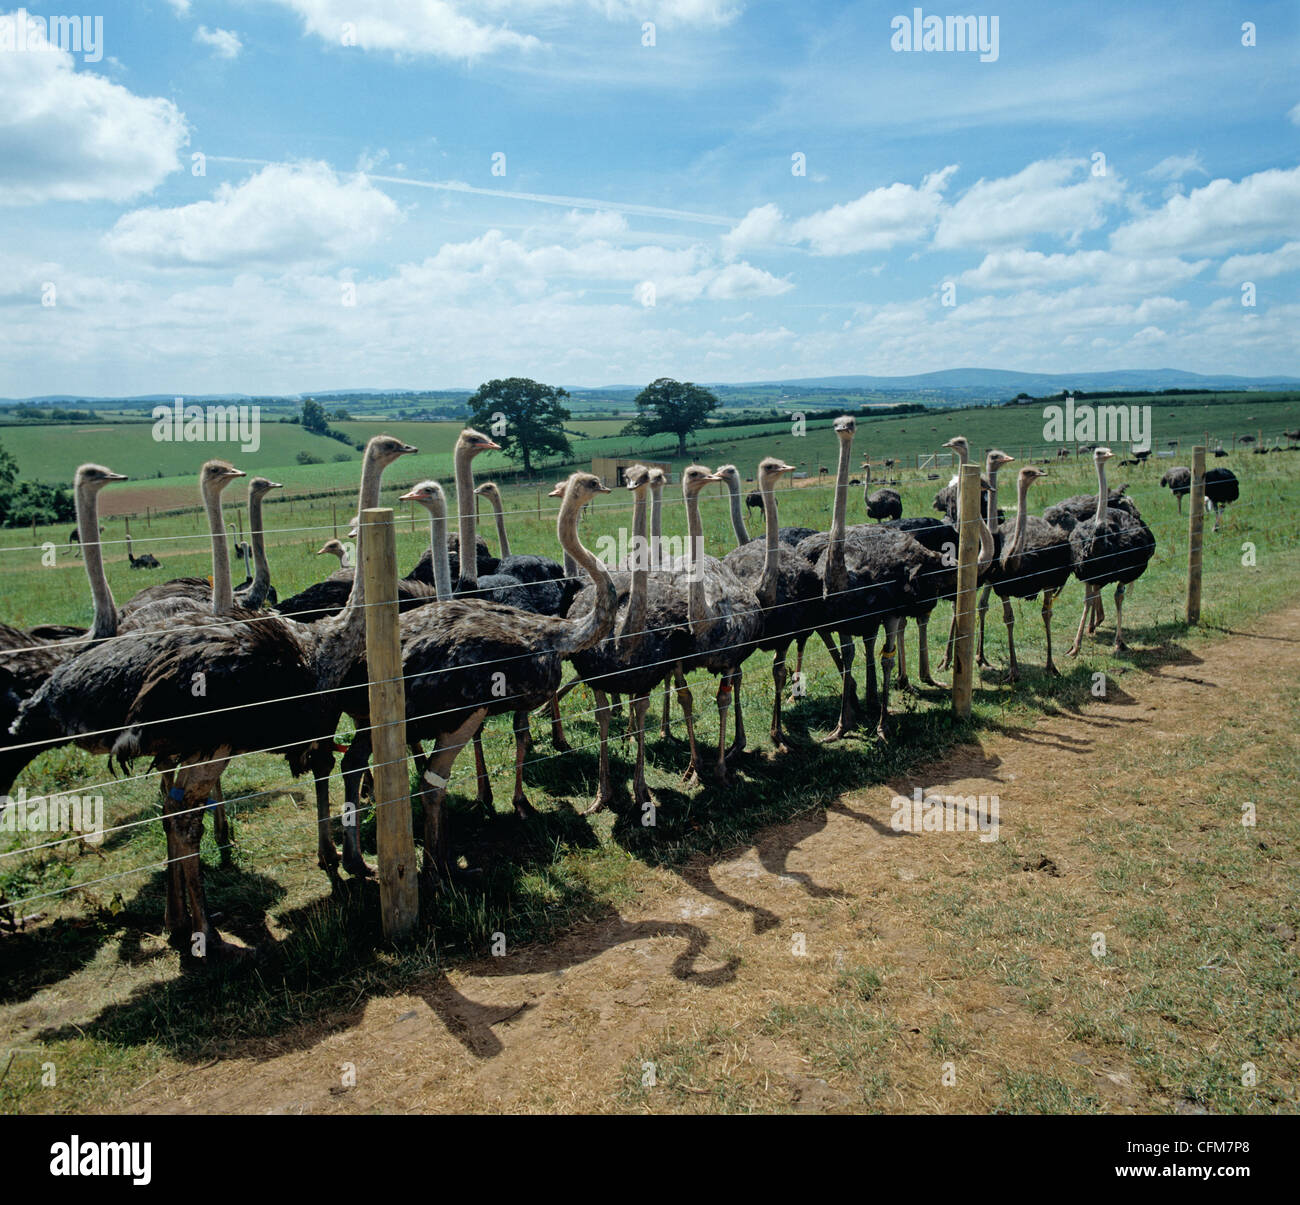 Several female ostriches behind a high wire fence in an enclosure - Stock Image